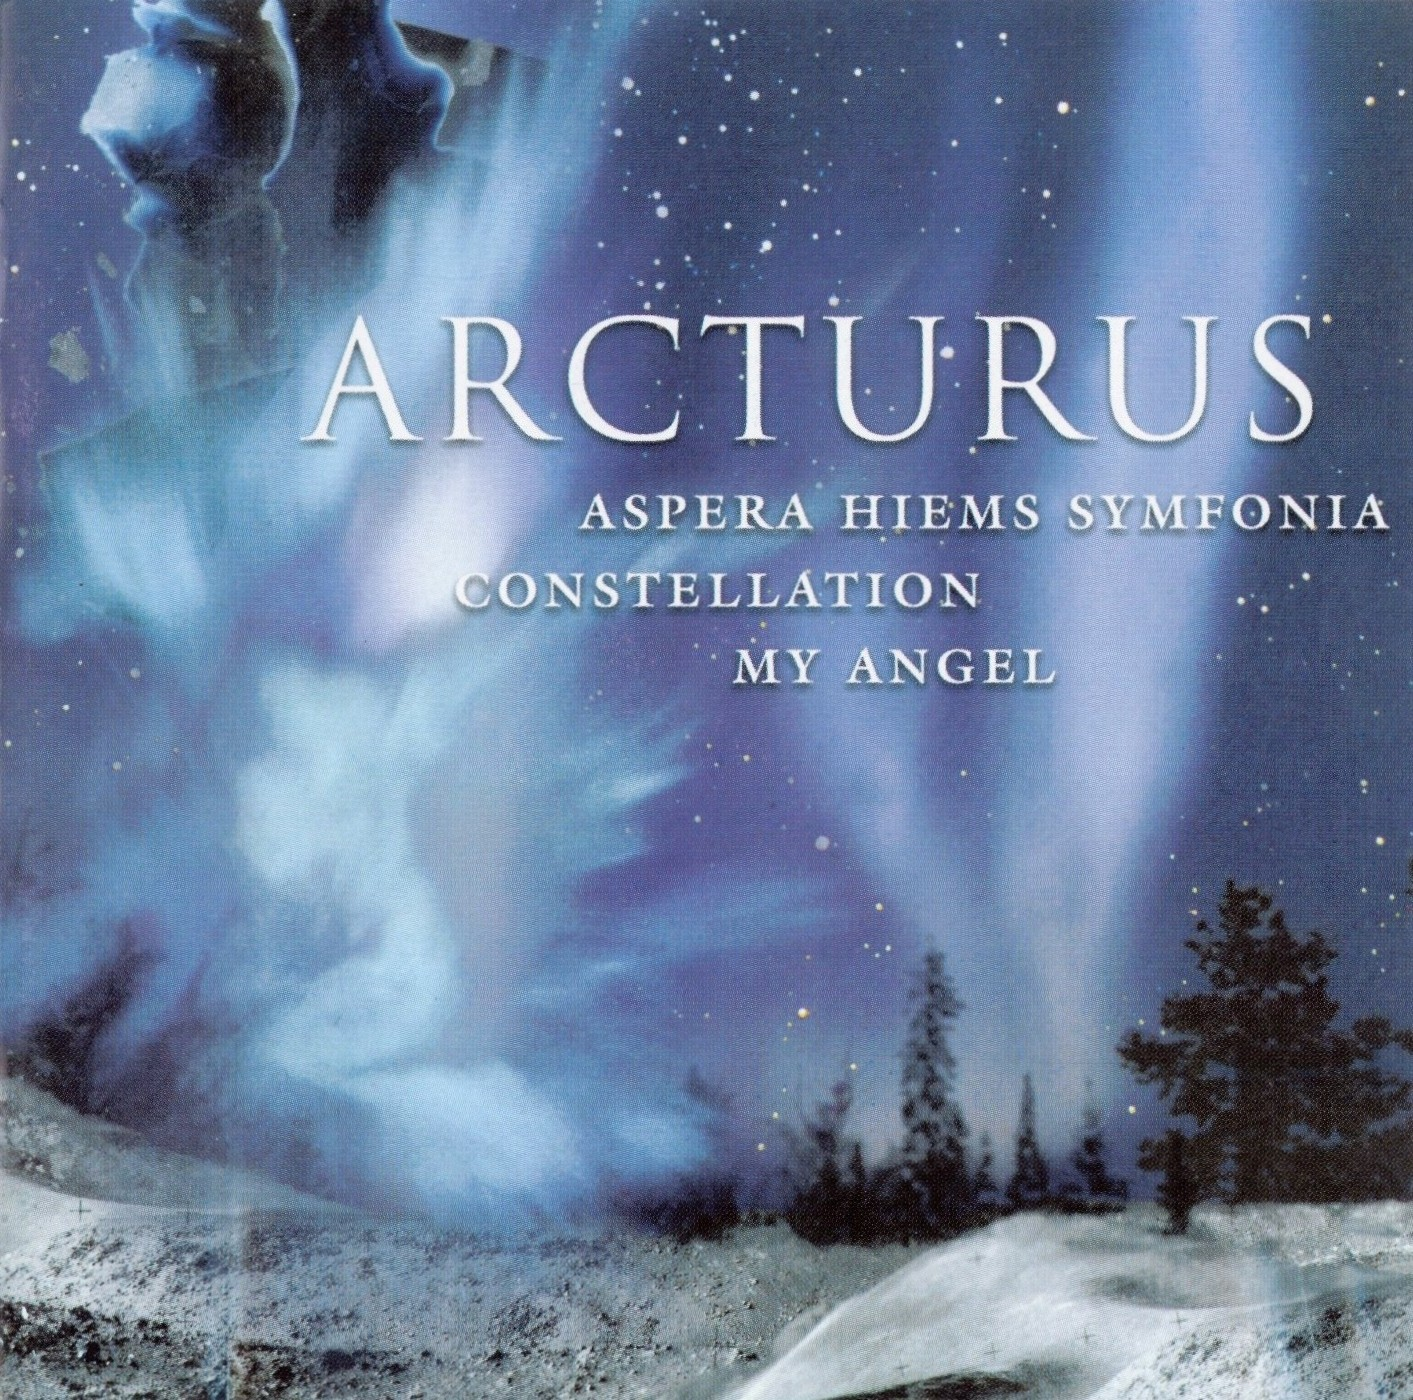 Arcturus - Aspera Hiems Symfonia/Constellation/My Angel (2002) [2 ...